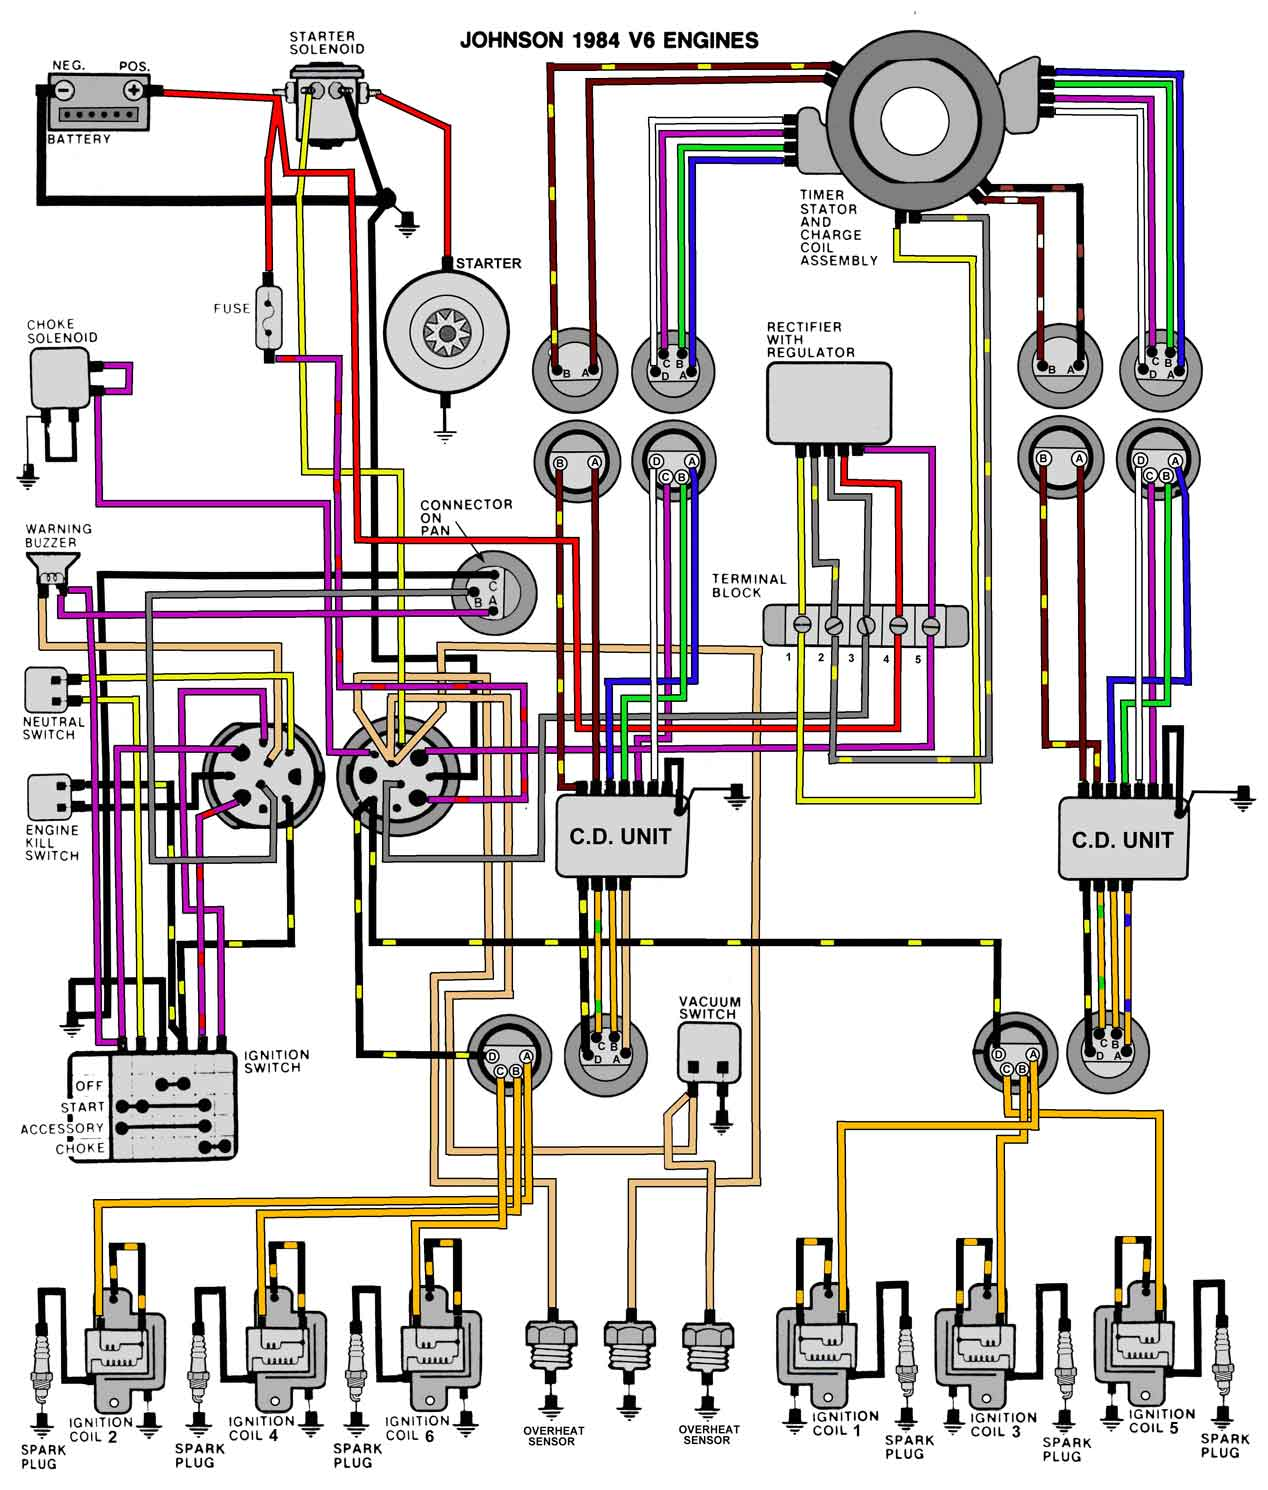 84_V6 mastertech marine evinrude johnson outboard wiring diagrams omc wiring harness diagram at bakdesigns.co